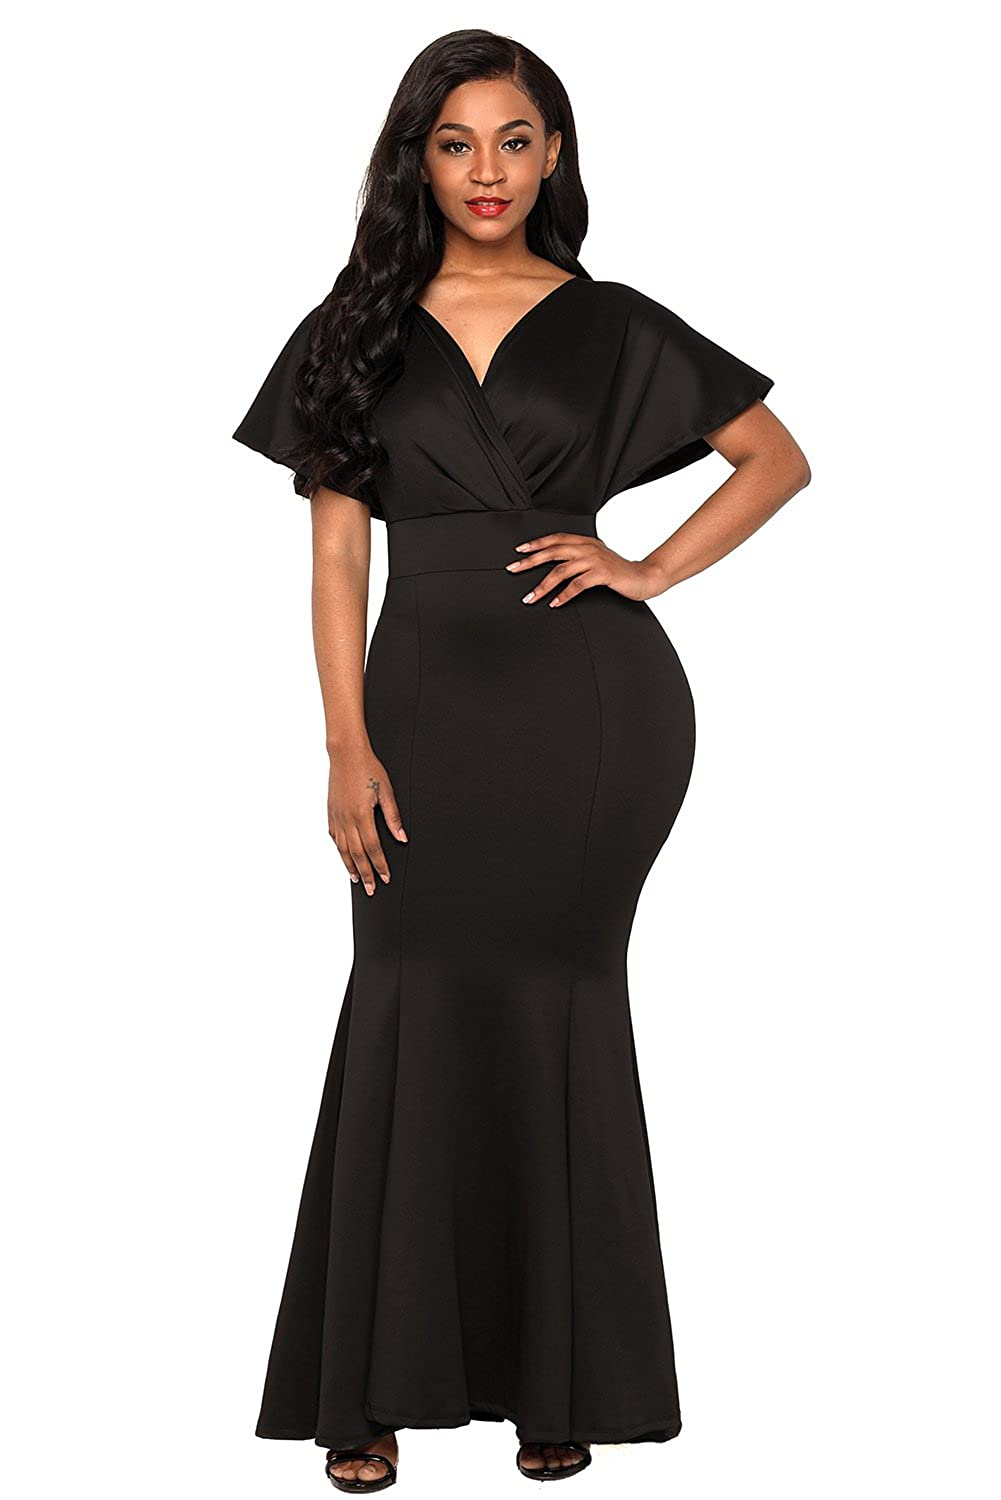 81a2ec4ed45 Top 10 wholesale Sexiest Prom Dresses - Chinabrands.com